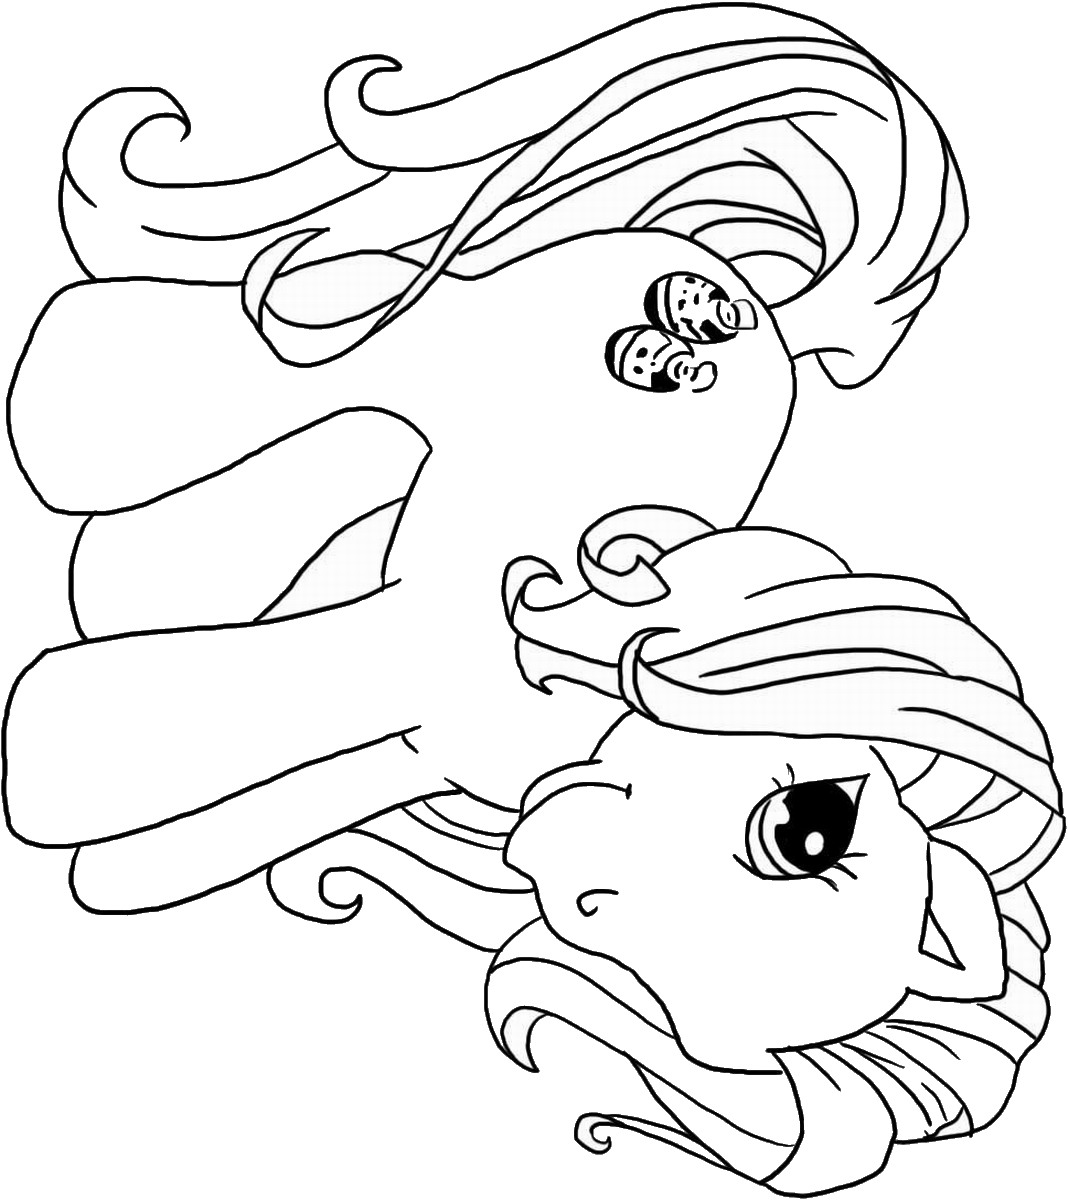 mlp coloring page my little pony coloring pages print and colorcom page mlp coloring 1 1